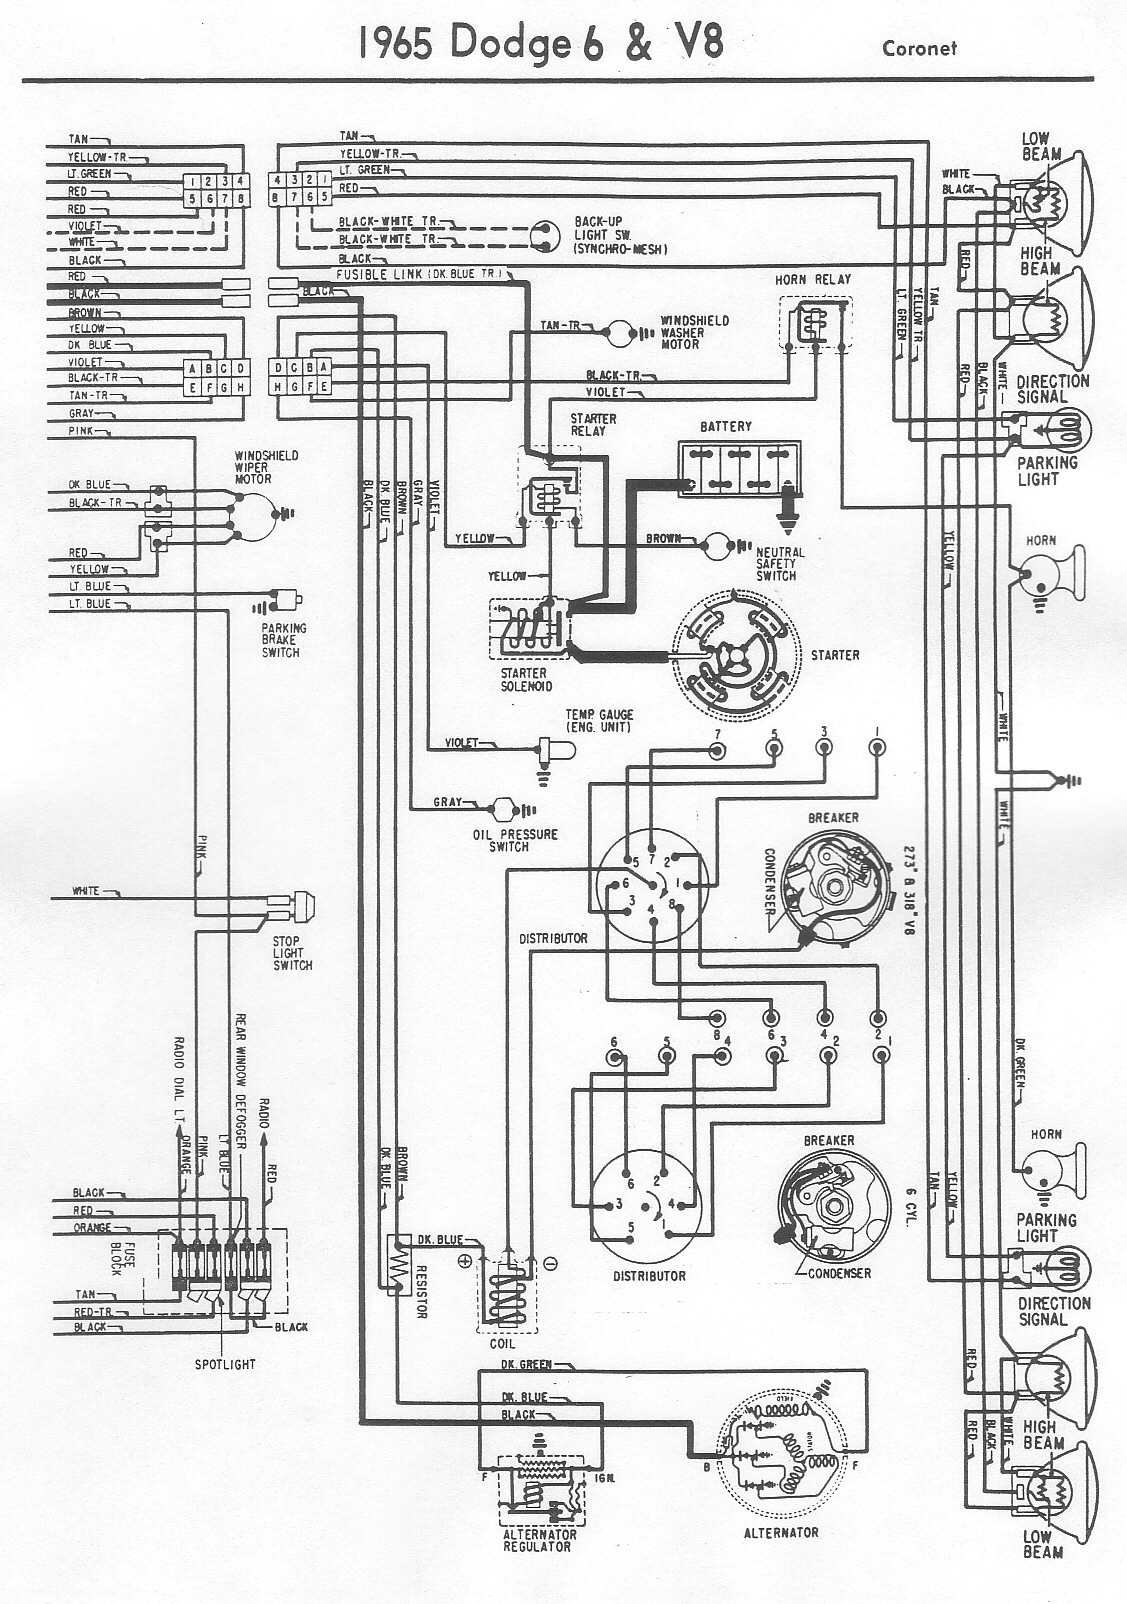 Ecu Wiring Diagram Mercedes